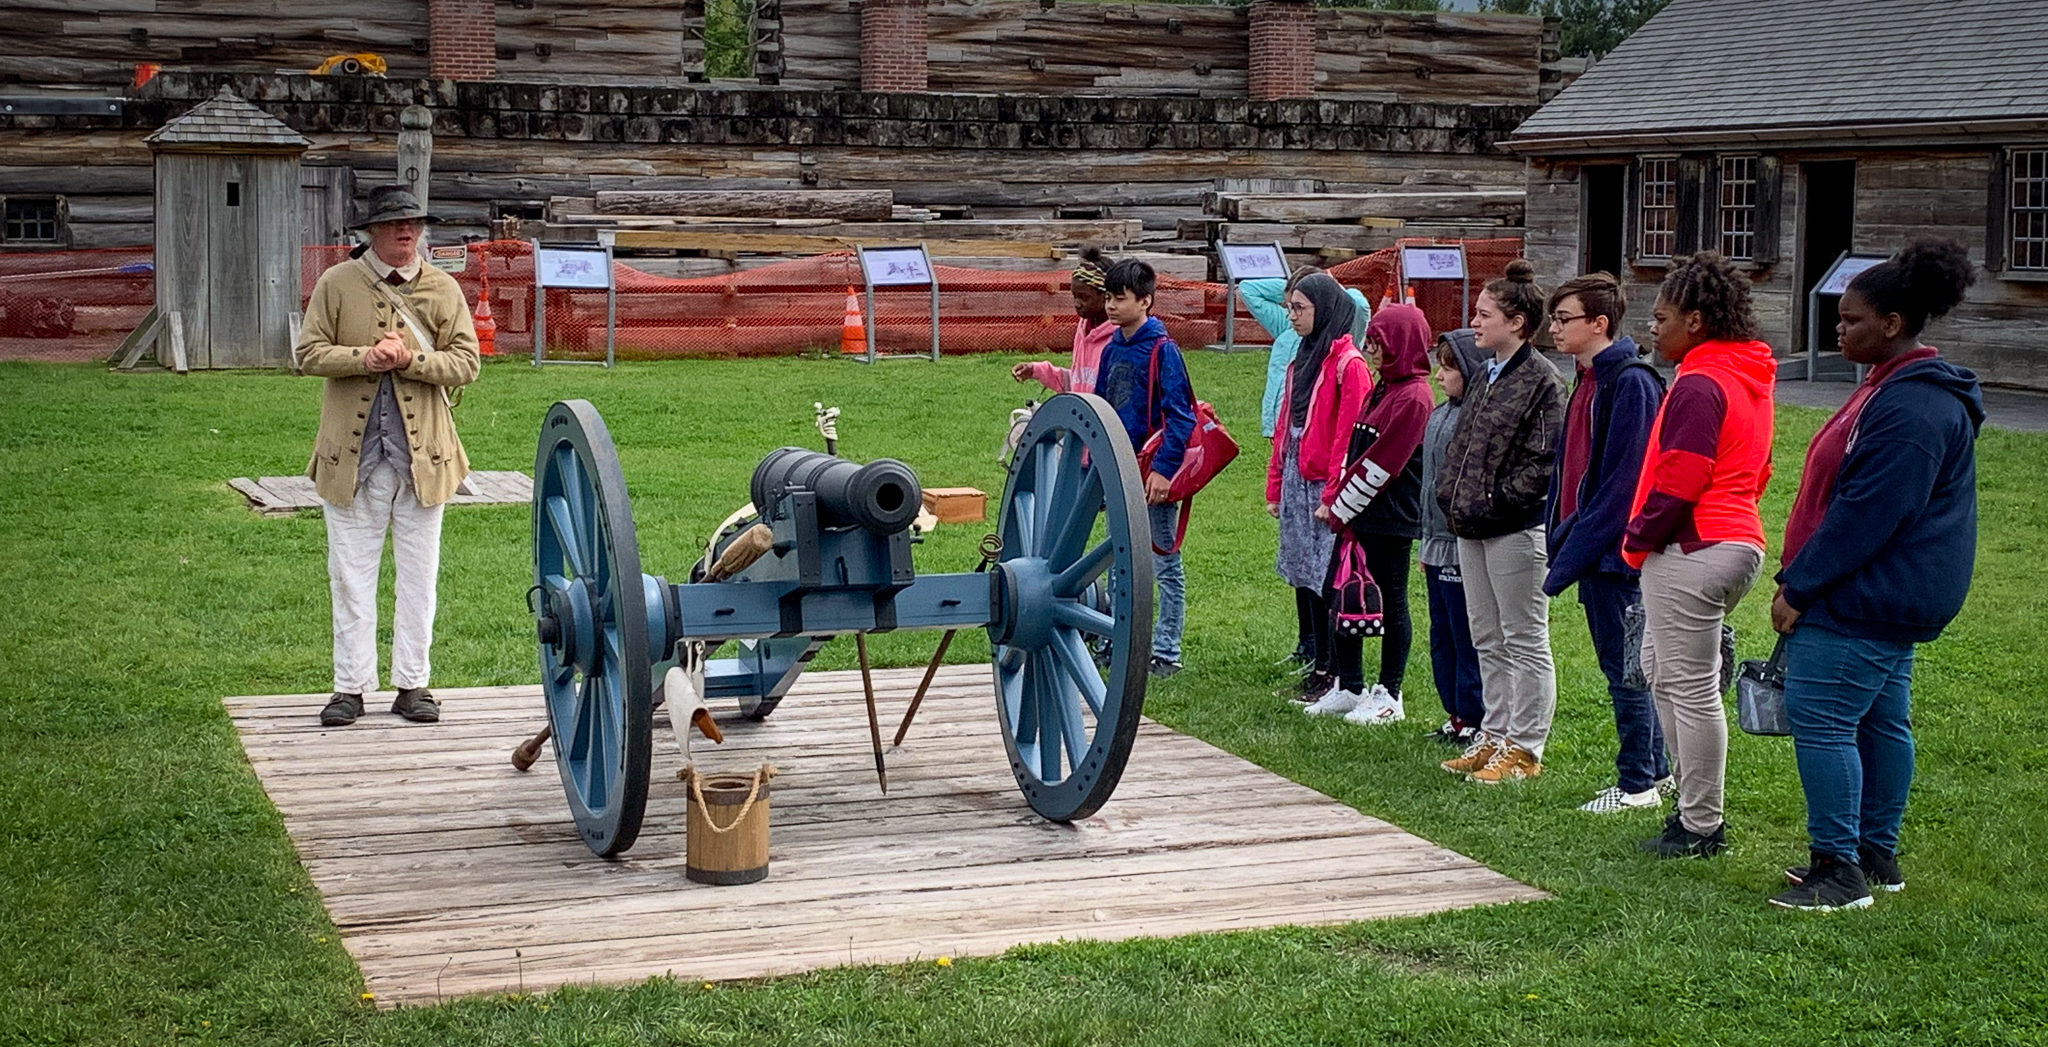 UASCS Atoms take a field trip to Fort Stanwix National Monument and Revolutionary War's Oriskany Battlefield historic site